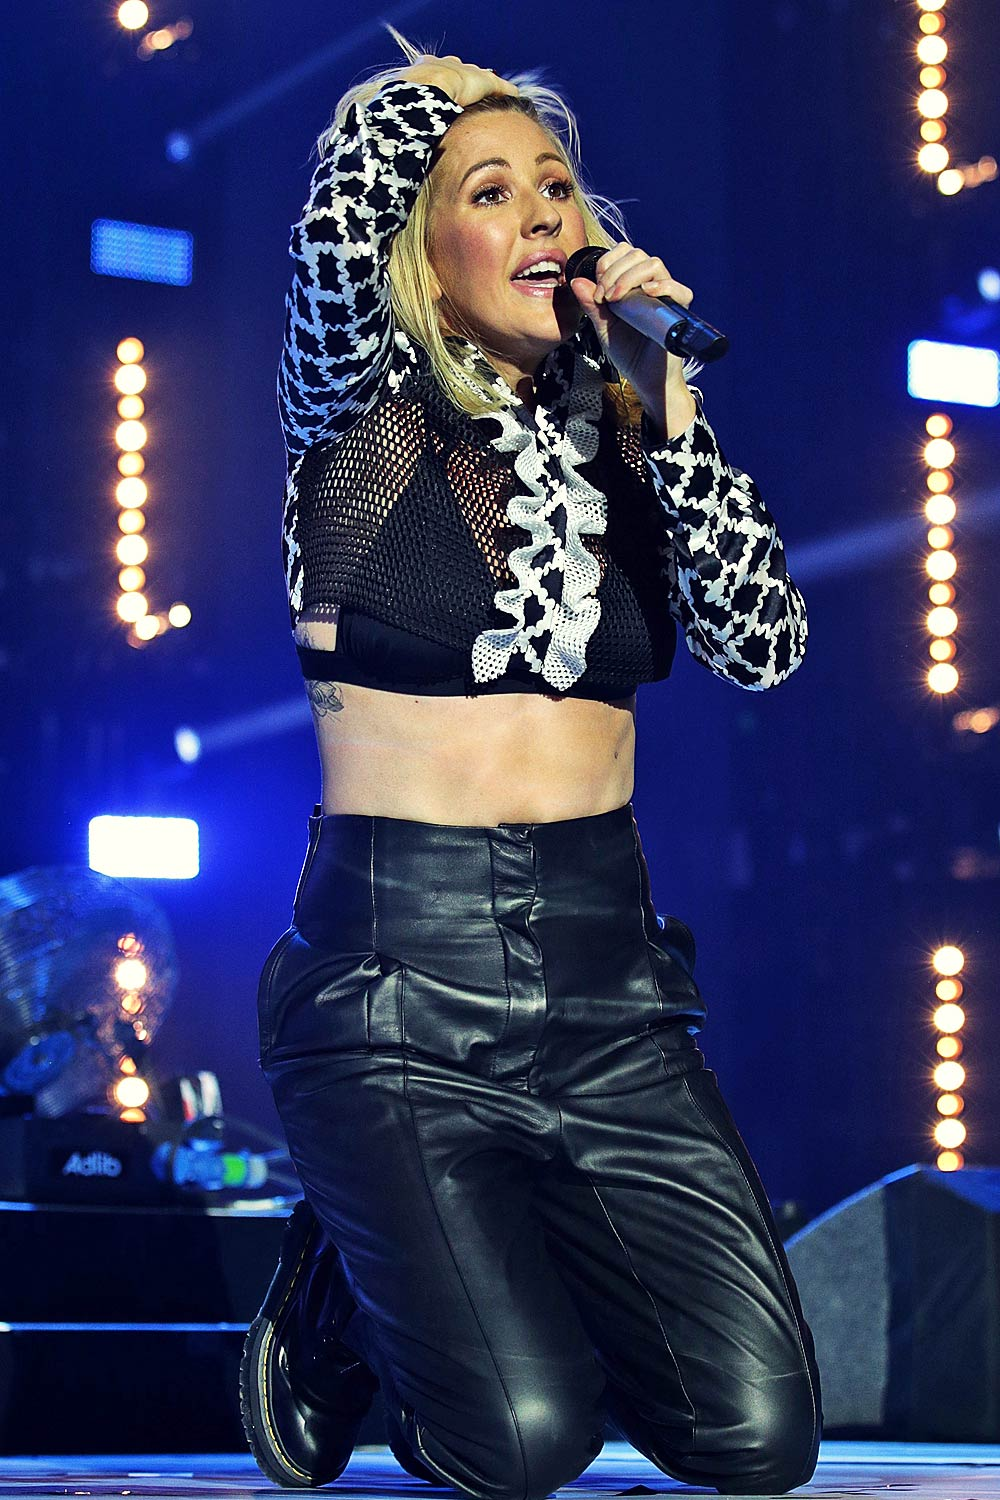 Ellie Goulding performs at Jingle Bell Ball 2015